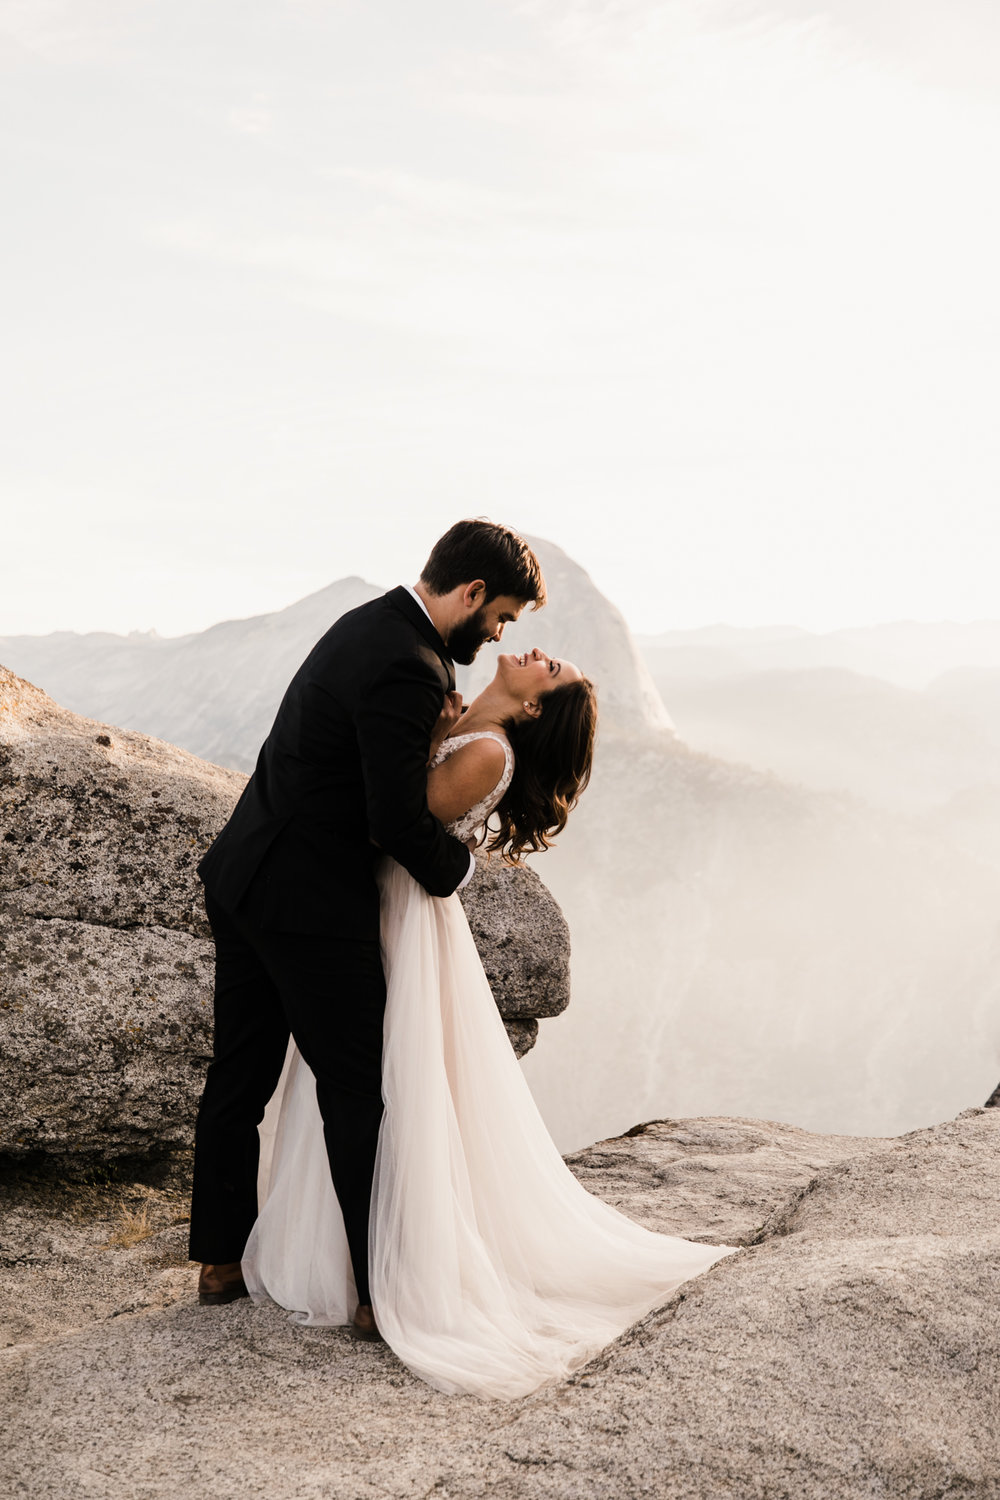 intimate yosemite elopement | destination adventure wedding photographers | the hearnes adventure photography | www.thehearnes.com